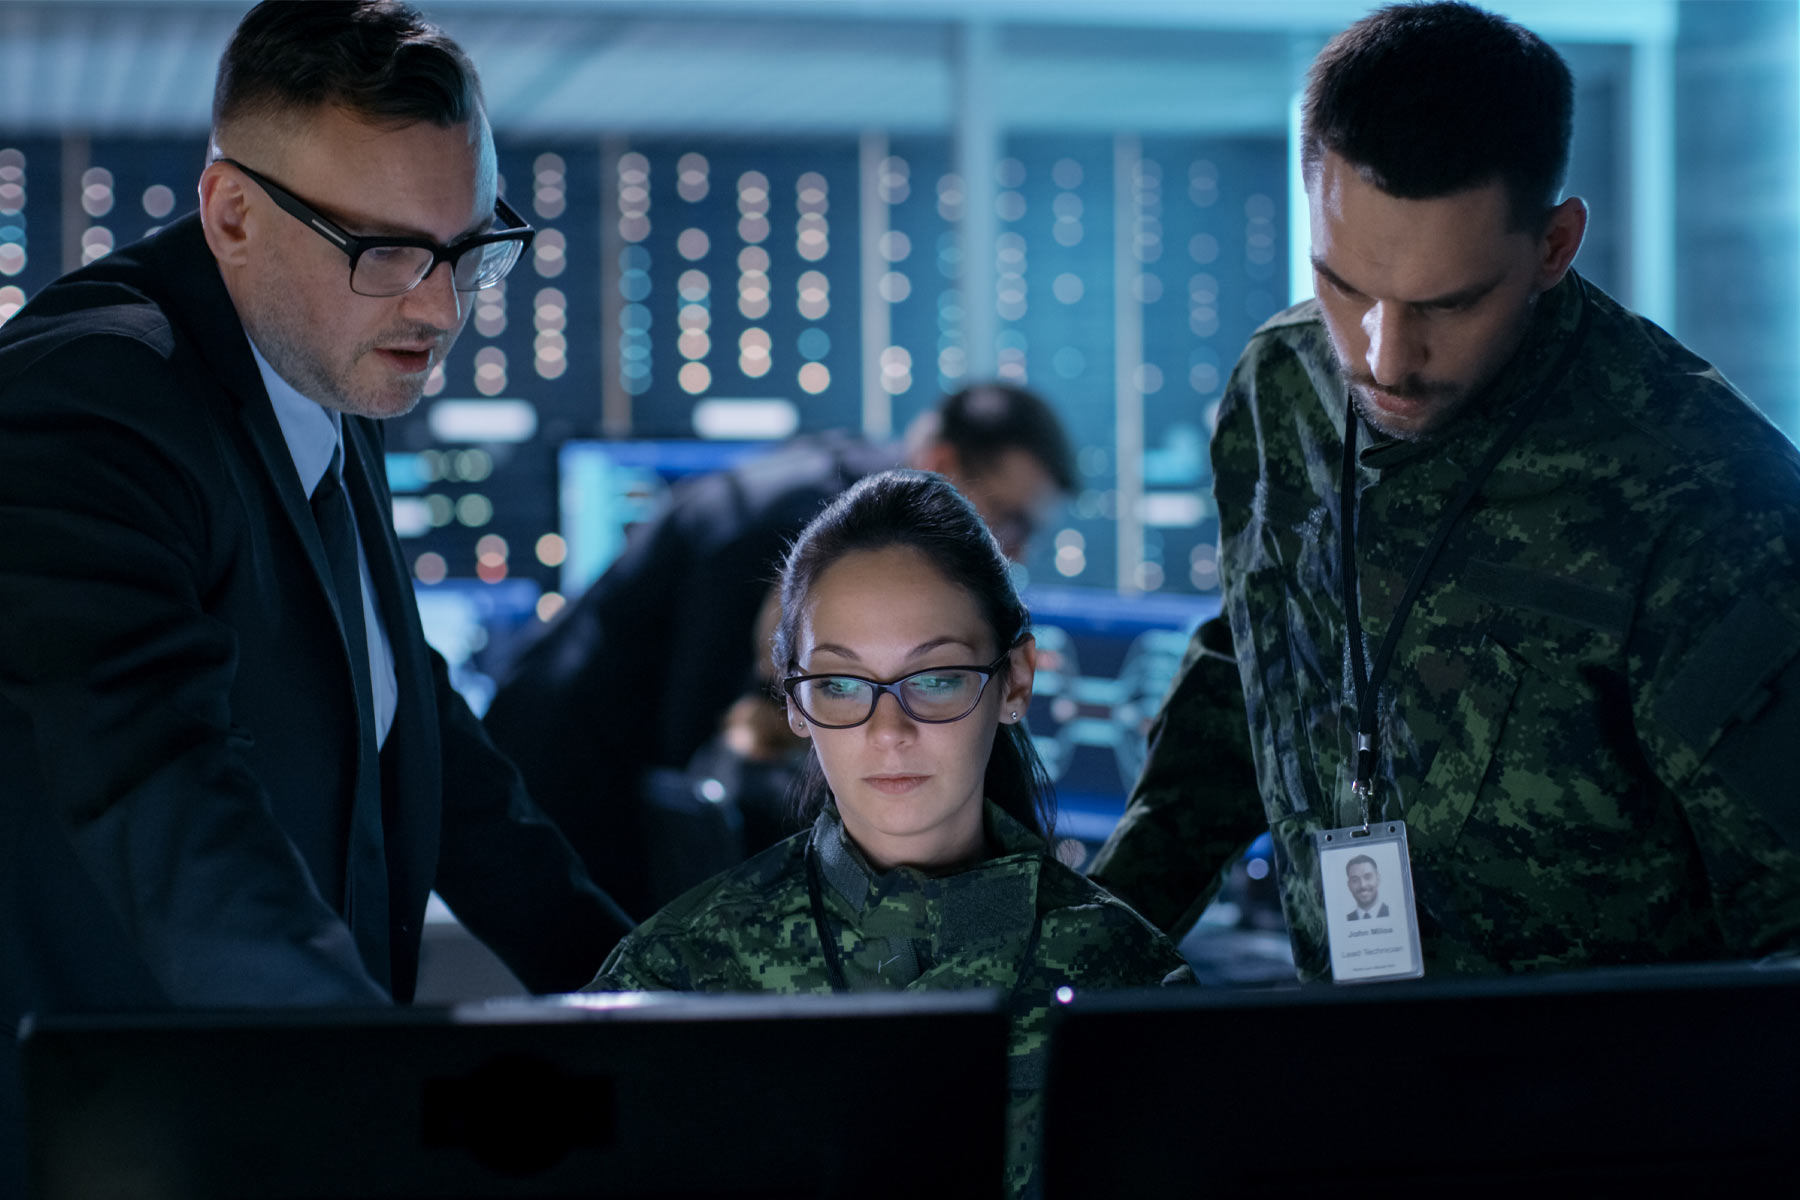 three military personnel look at computer screens together